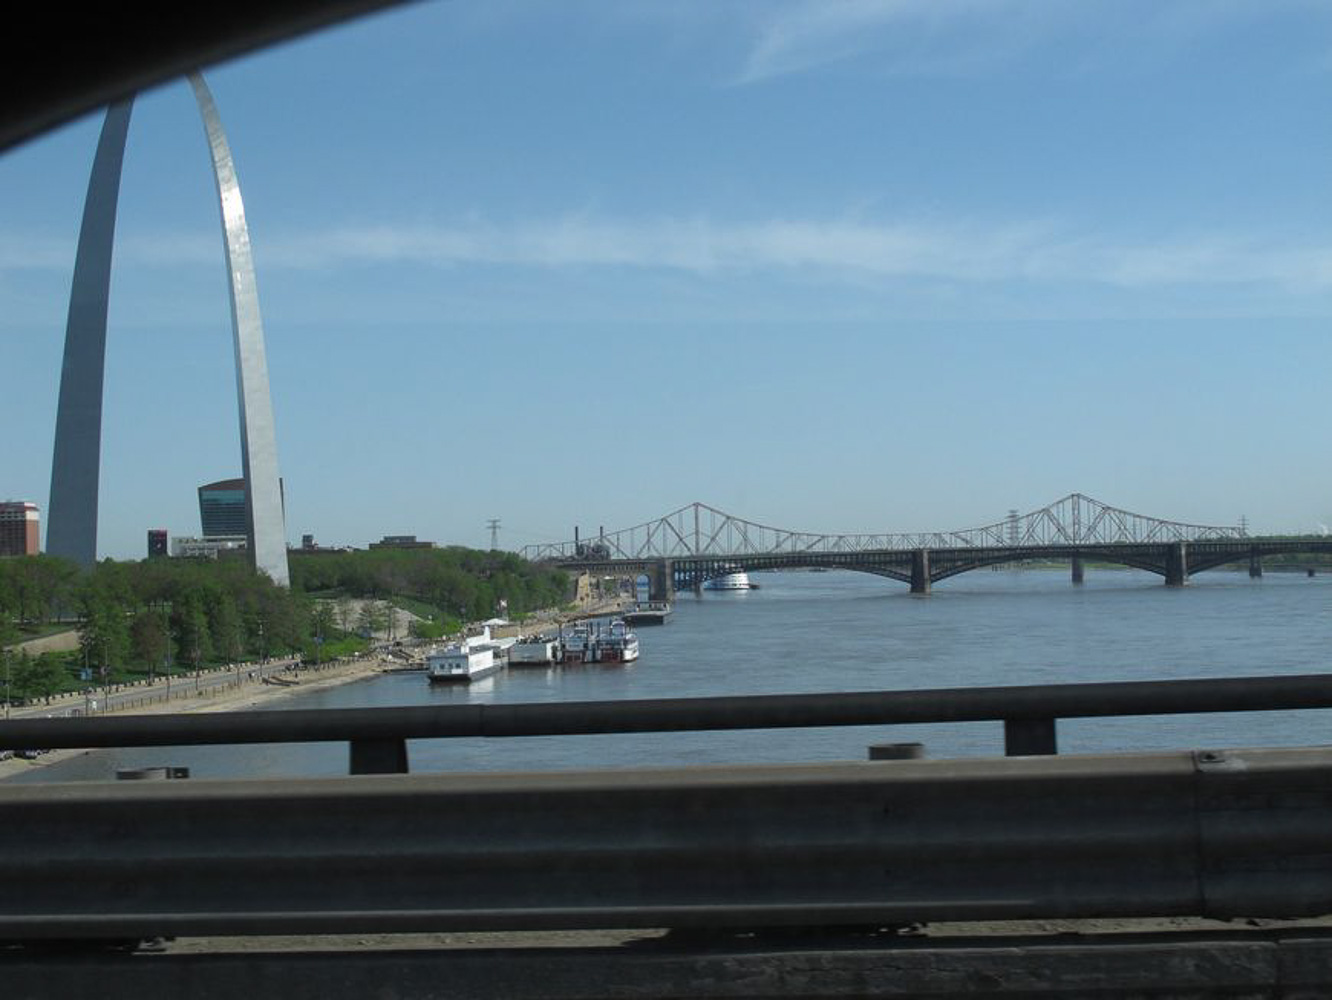 Driving Route 66, back in St Louis and the Arch